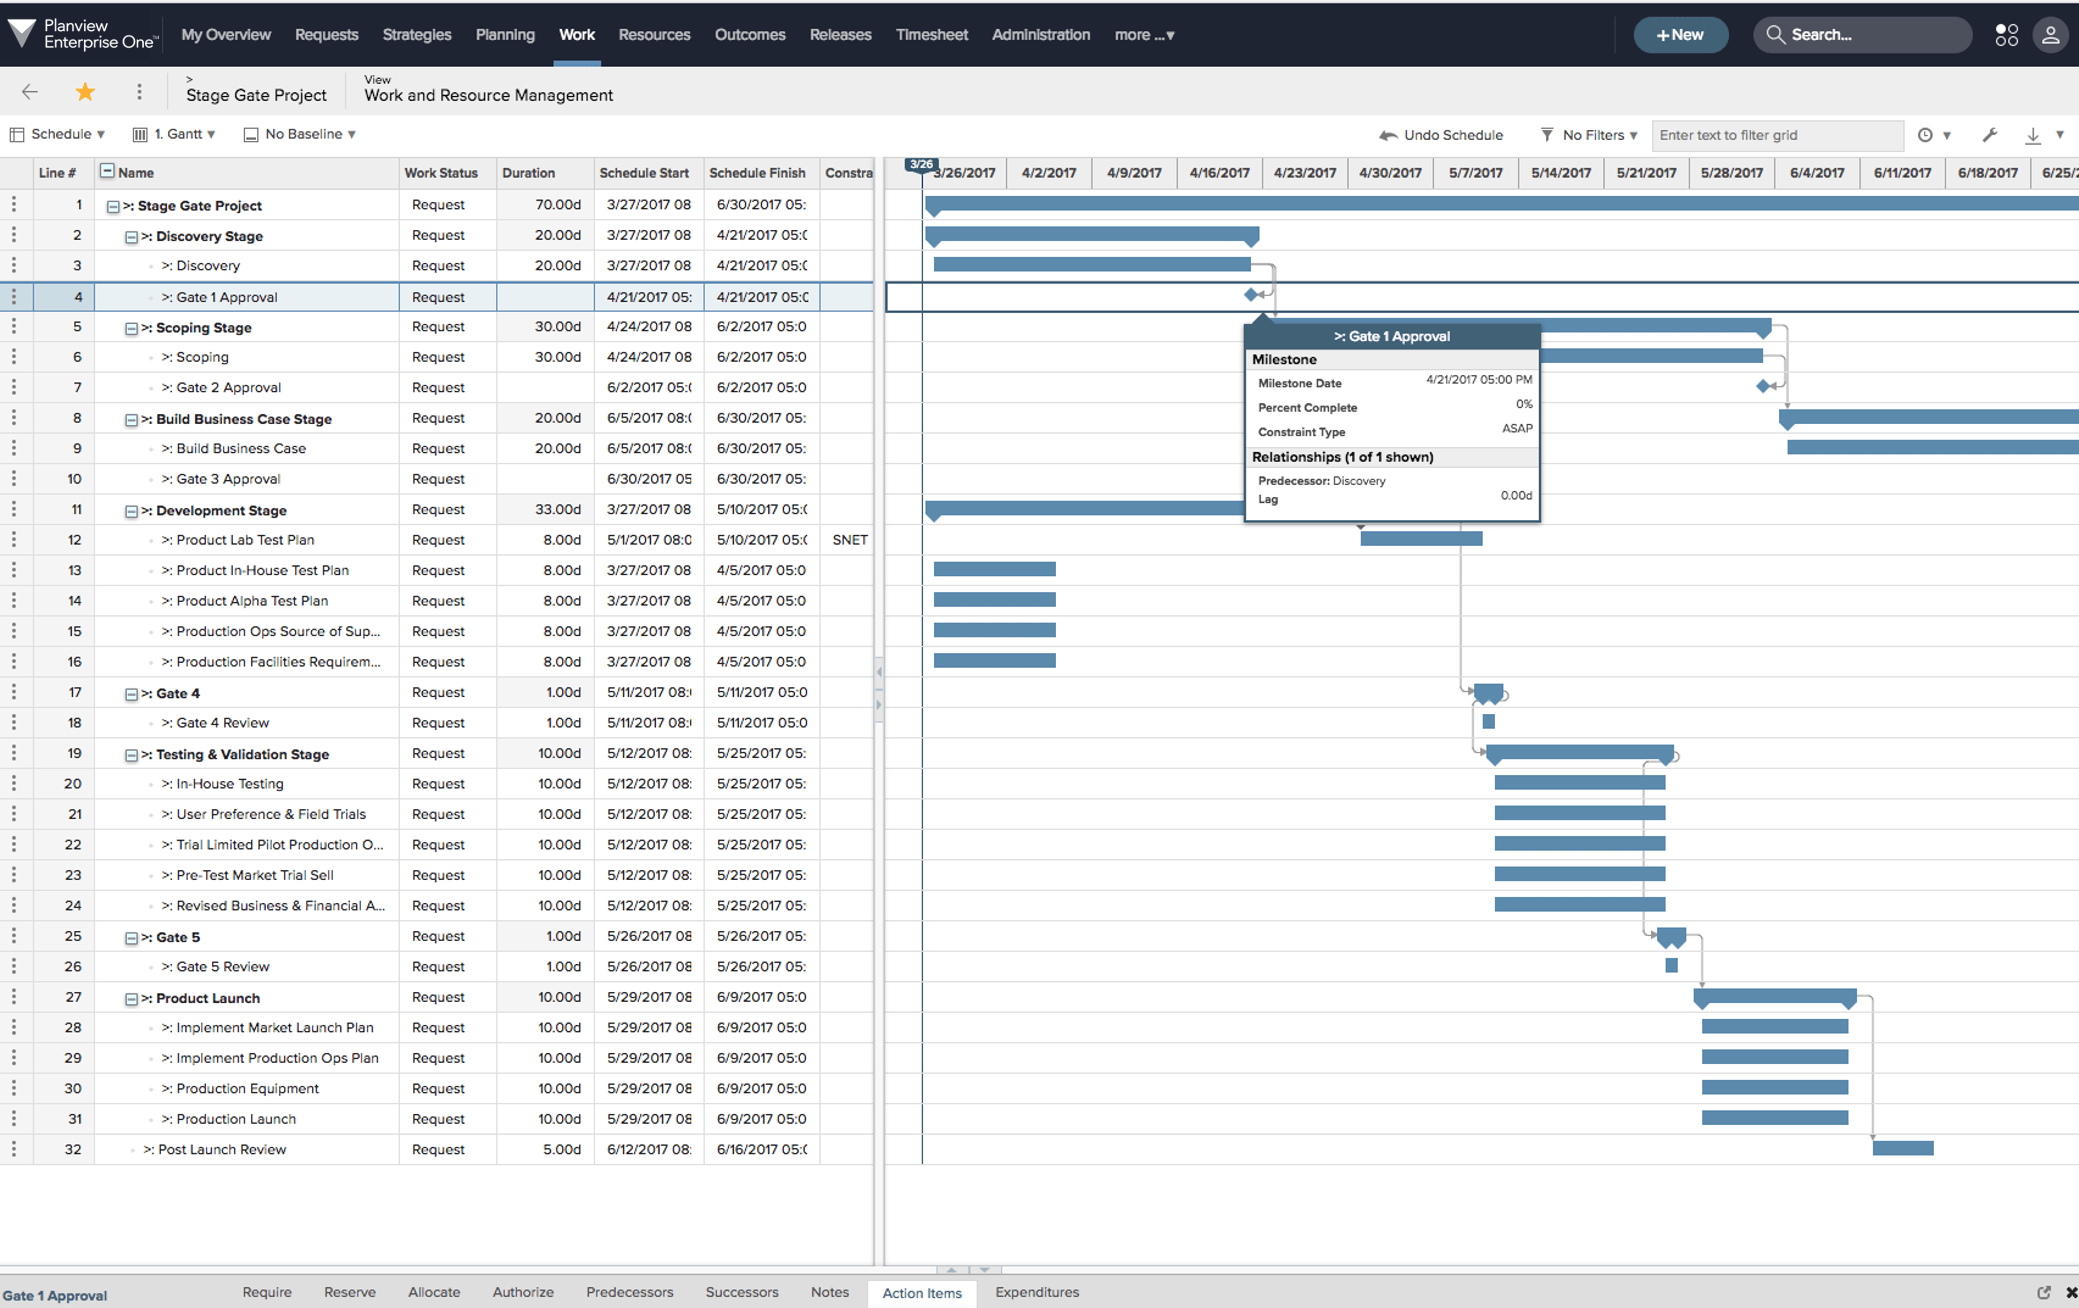 Planview Enterprise One work and resource management dashboard